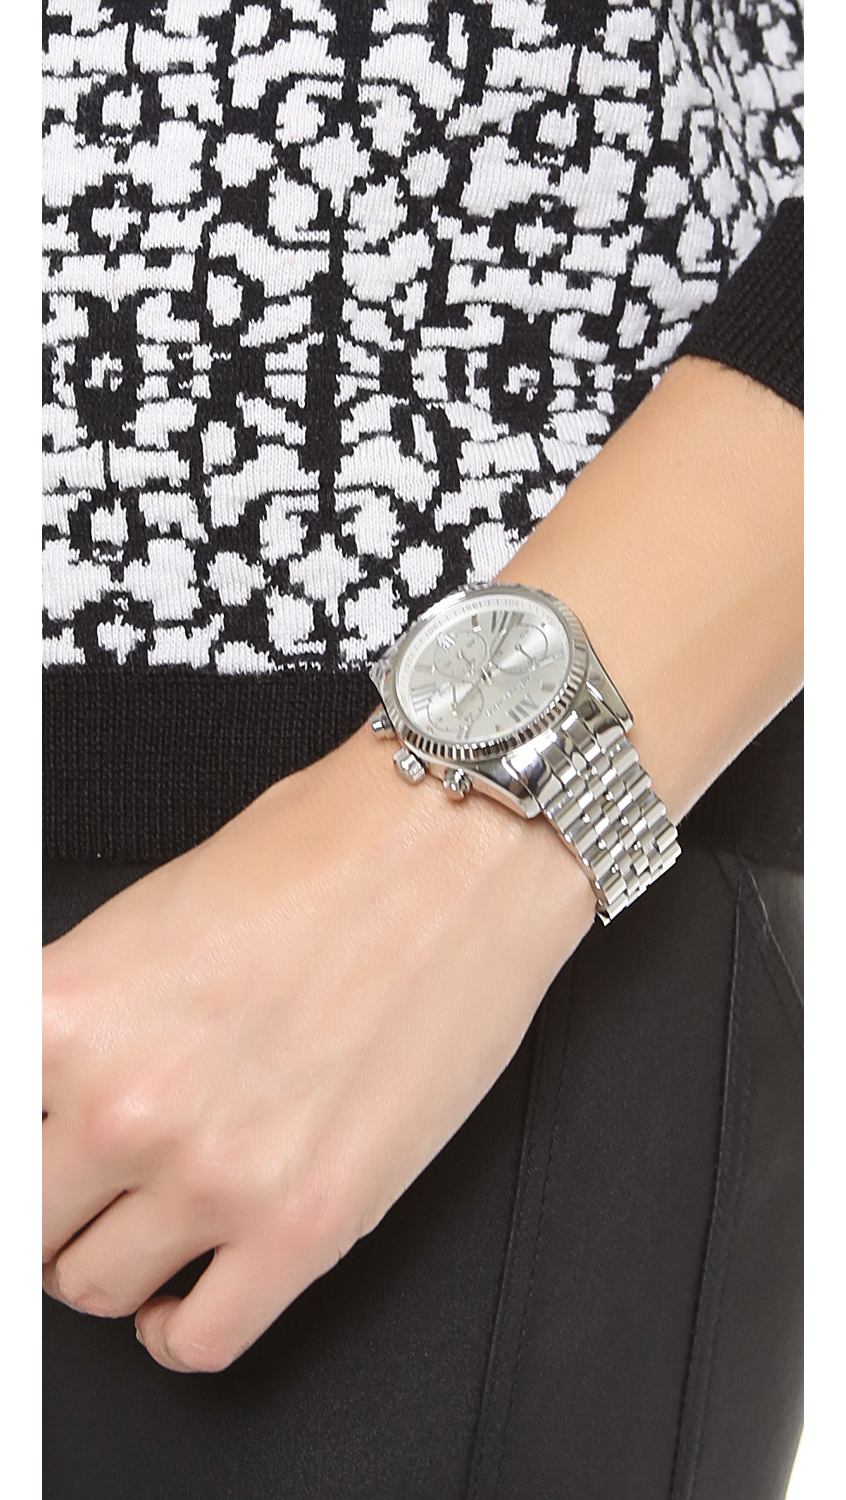 ced730f2e9d Gallery. Previously sold at: Shopbop · Women's Michael Kors Lexington